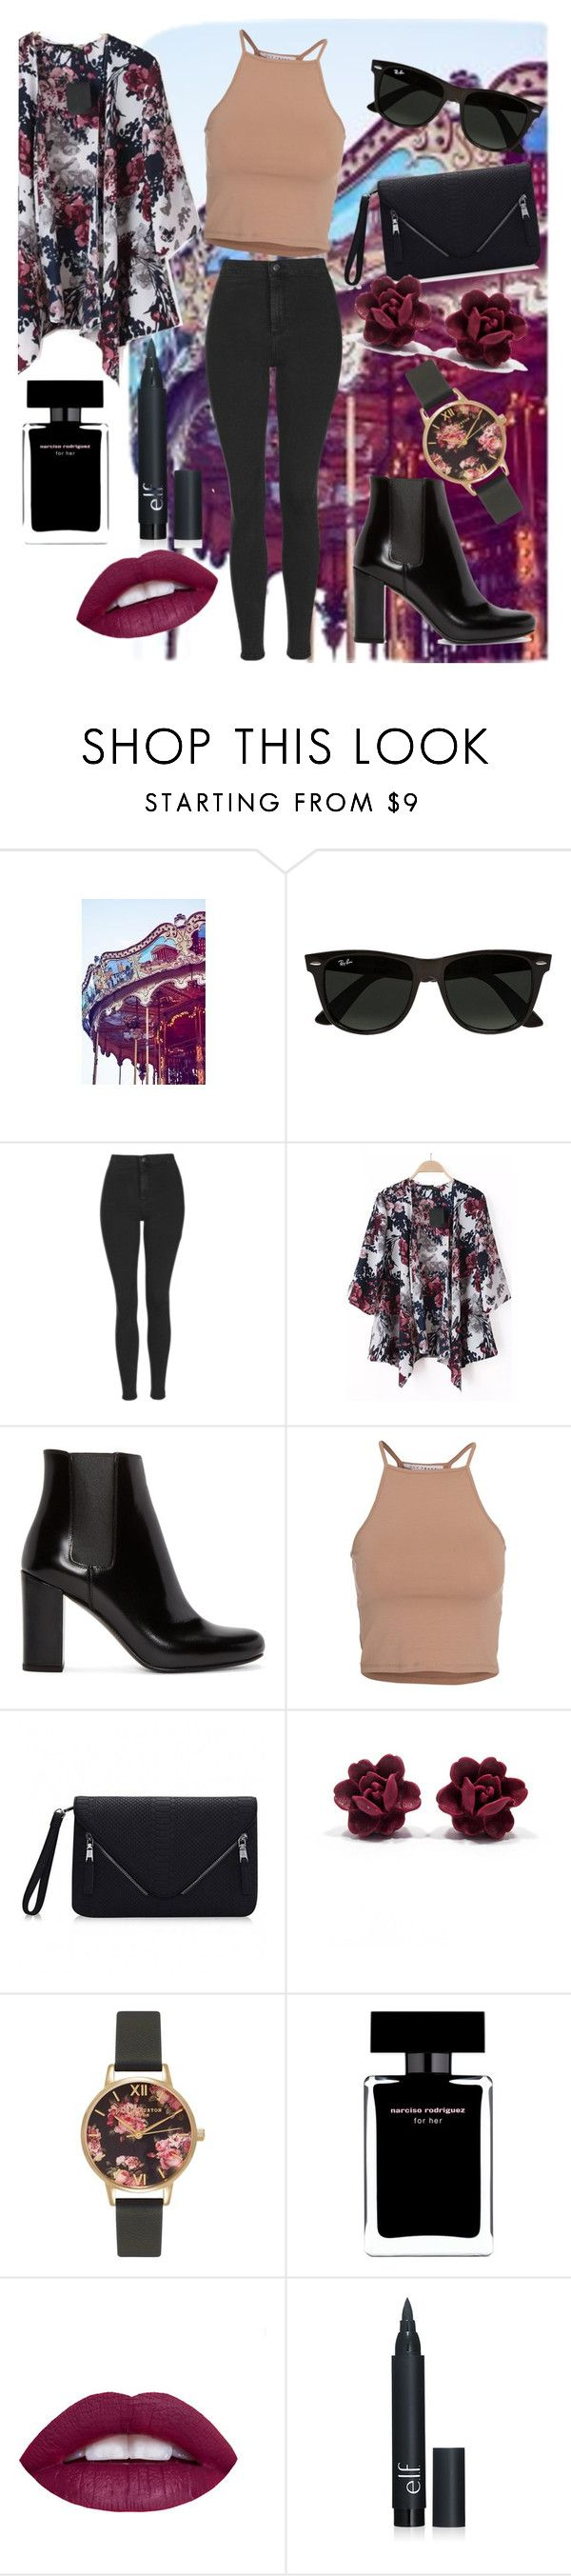 """""""Carnaval Date"""" by dianamaria267 ❤ liked on Polyvore featuring Ray-Ban, Topshop, Yves Saint Laurent, NLY Trend, Olivia Burton, Narciso Rodriguez, women's clothing, women, female and woman"""